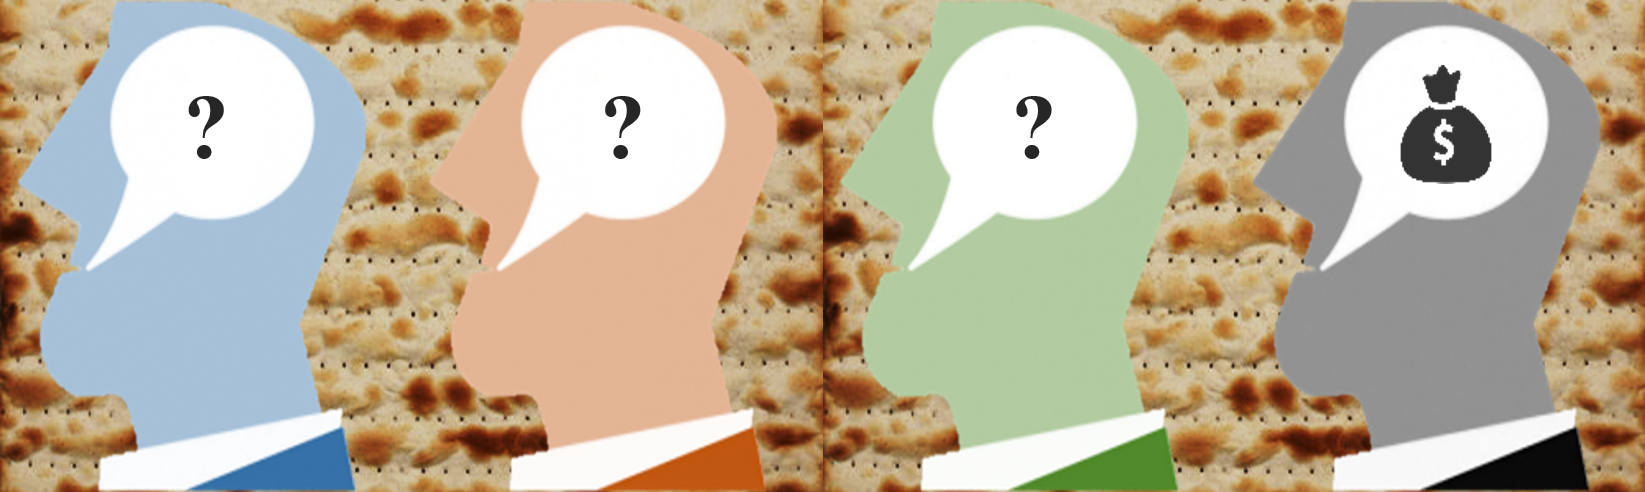 Lessons from Passover: The 4 Sons of Angel Investing